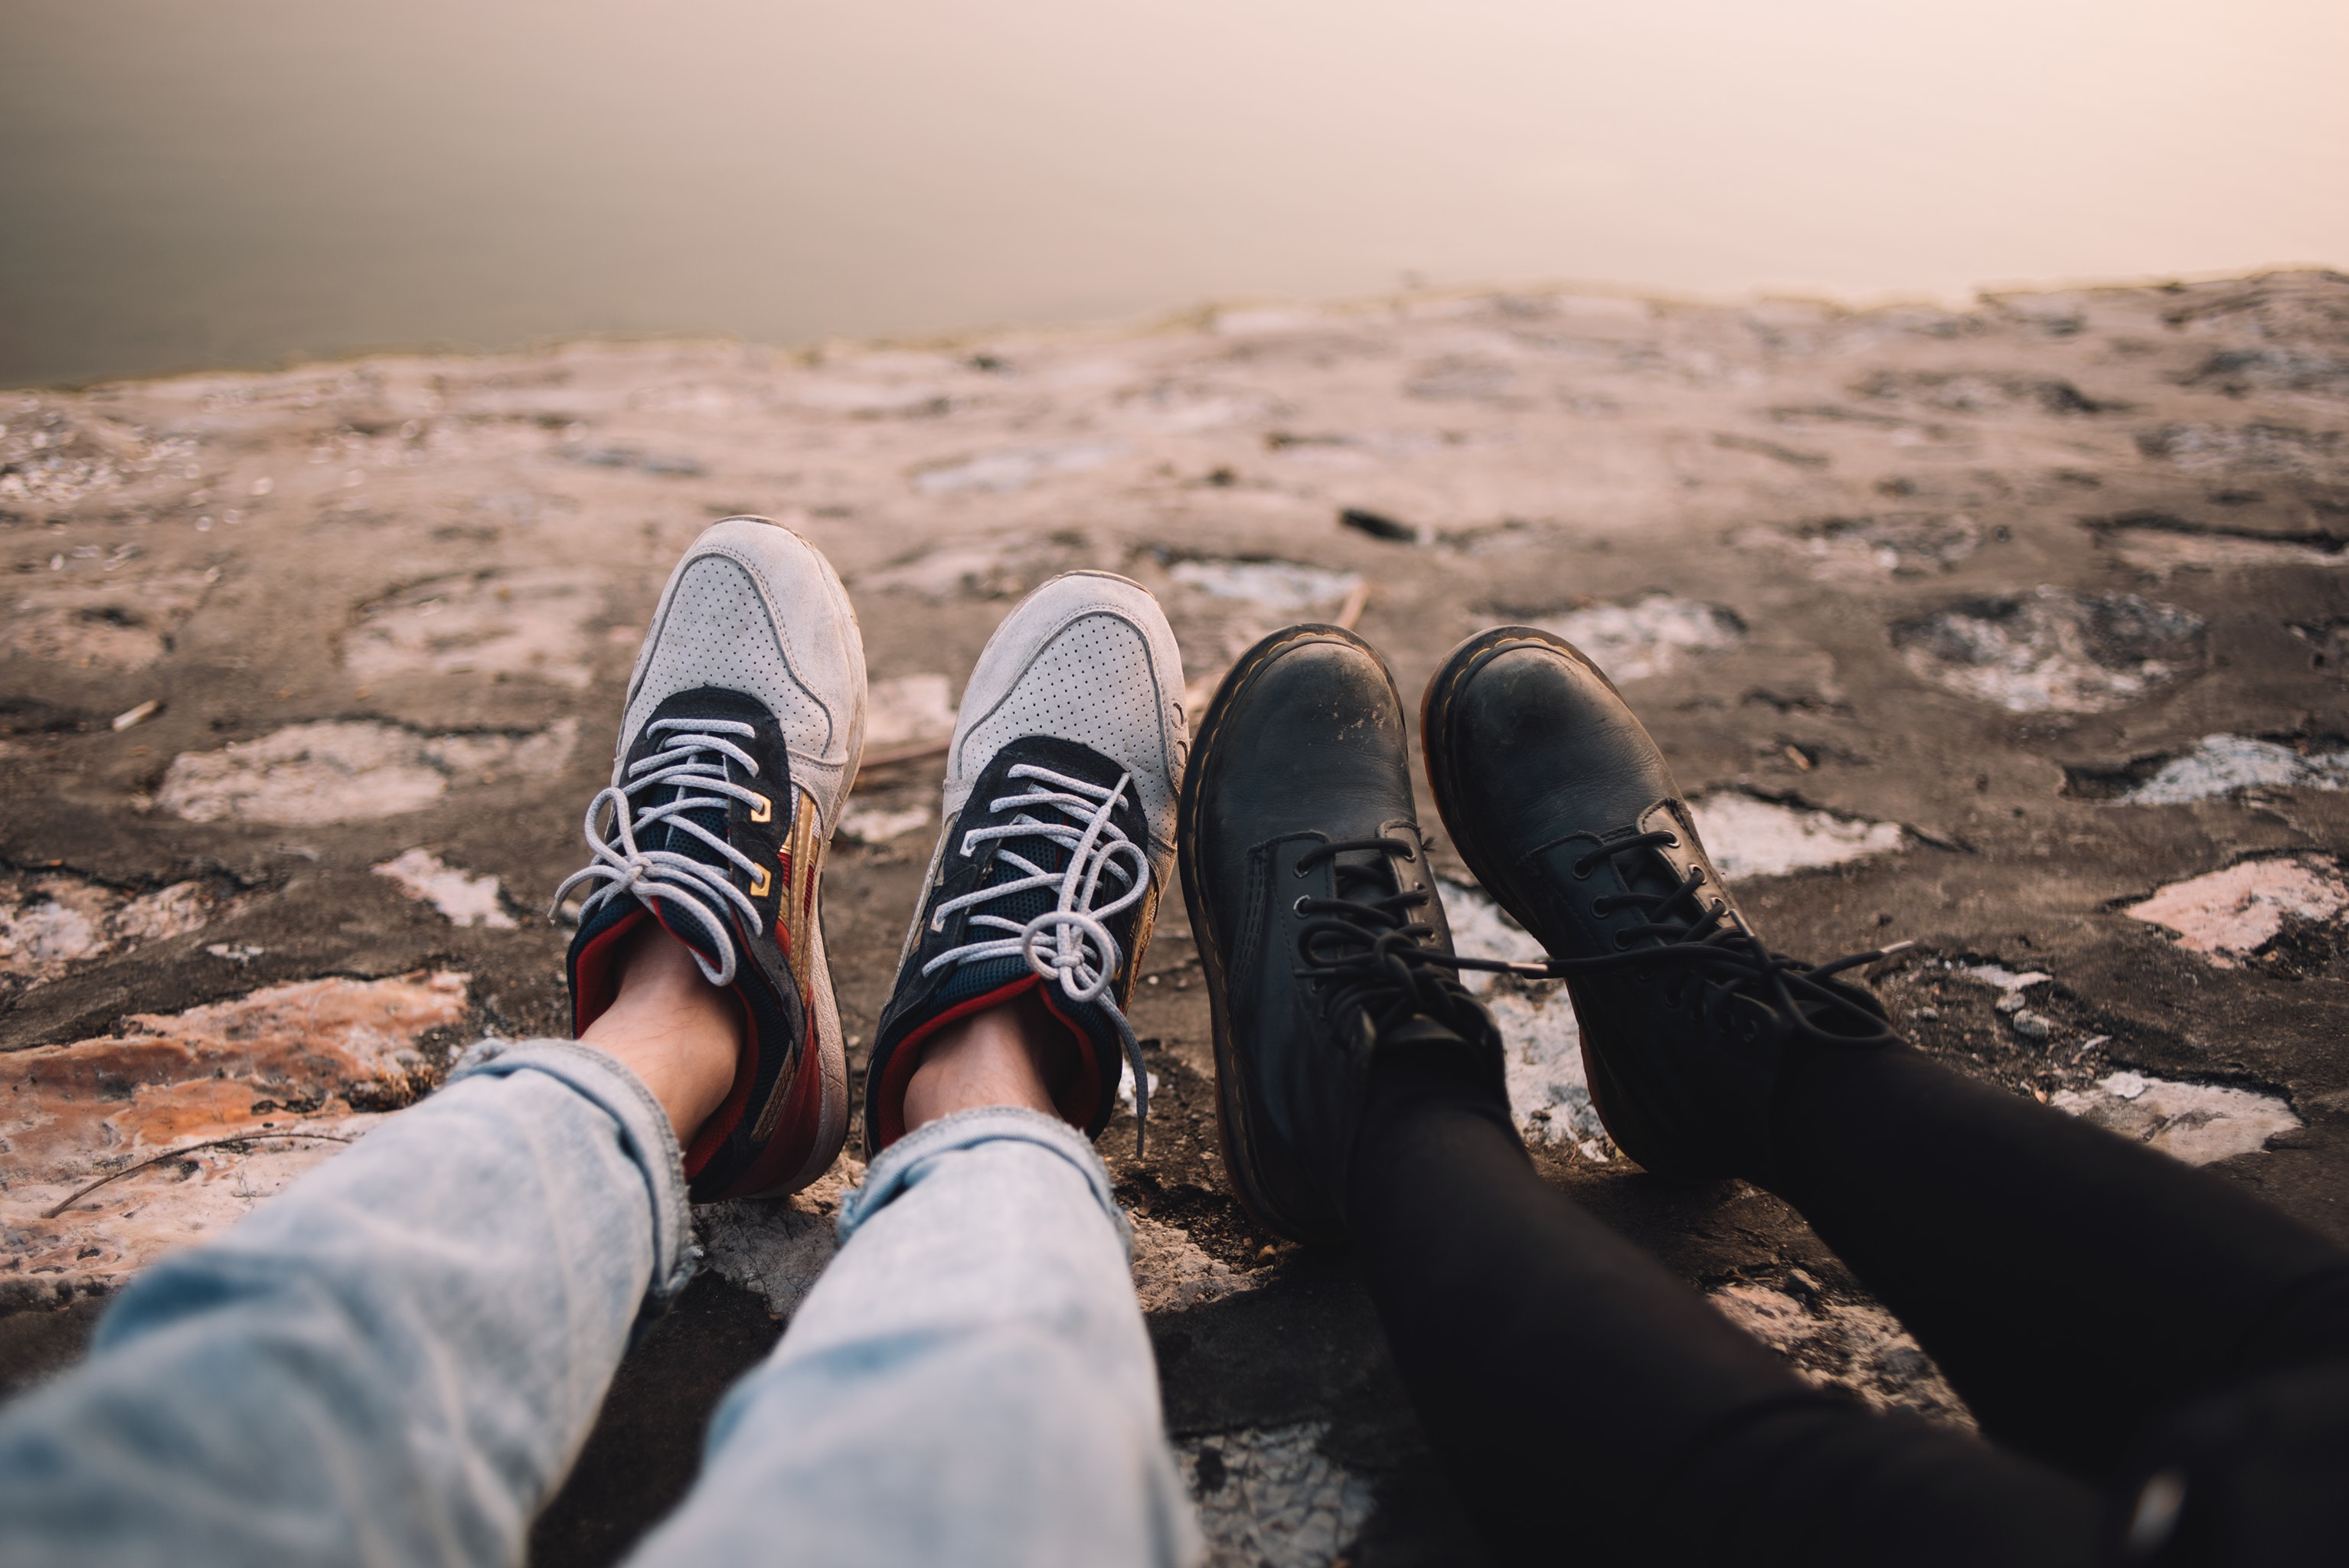 Two persons wearing pants and shoes sit on the ground at daytime